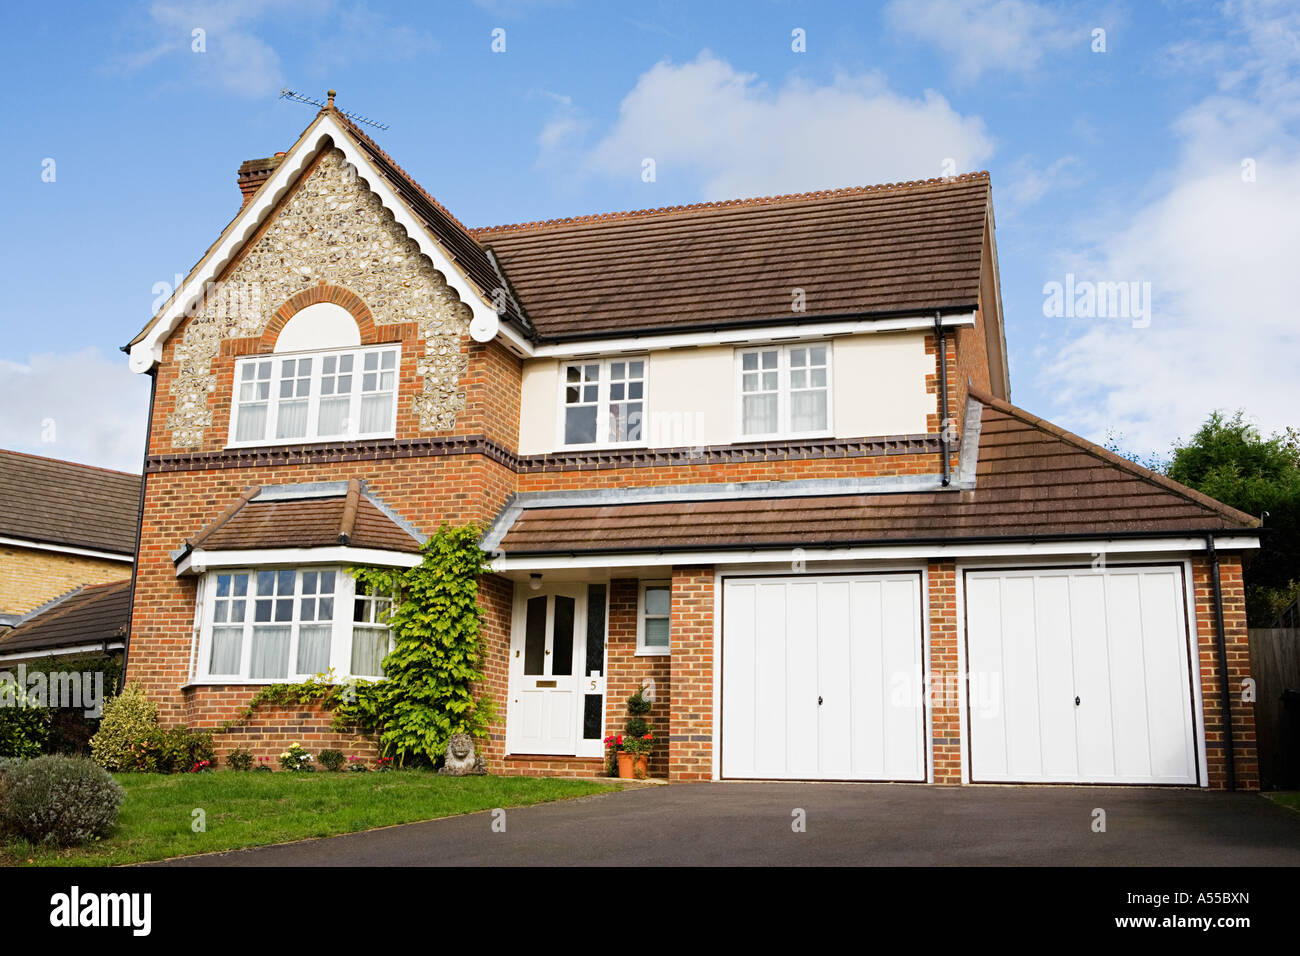 Detached house - Stock Image